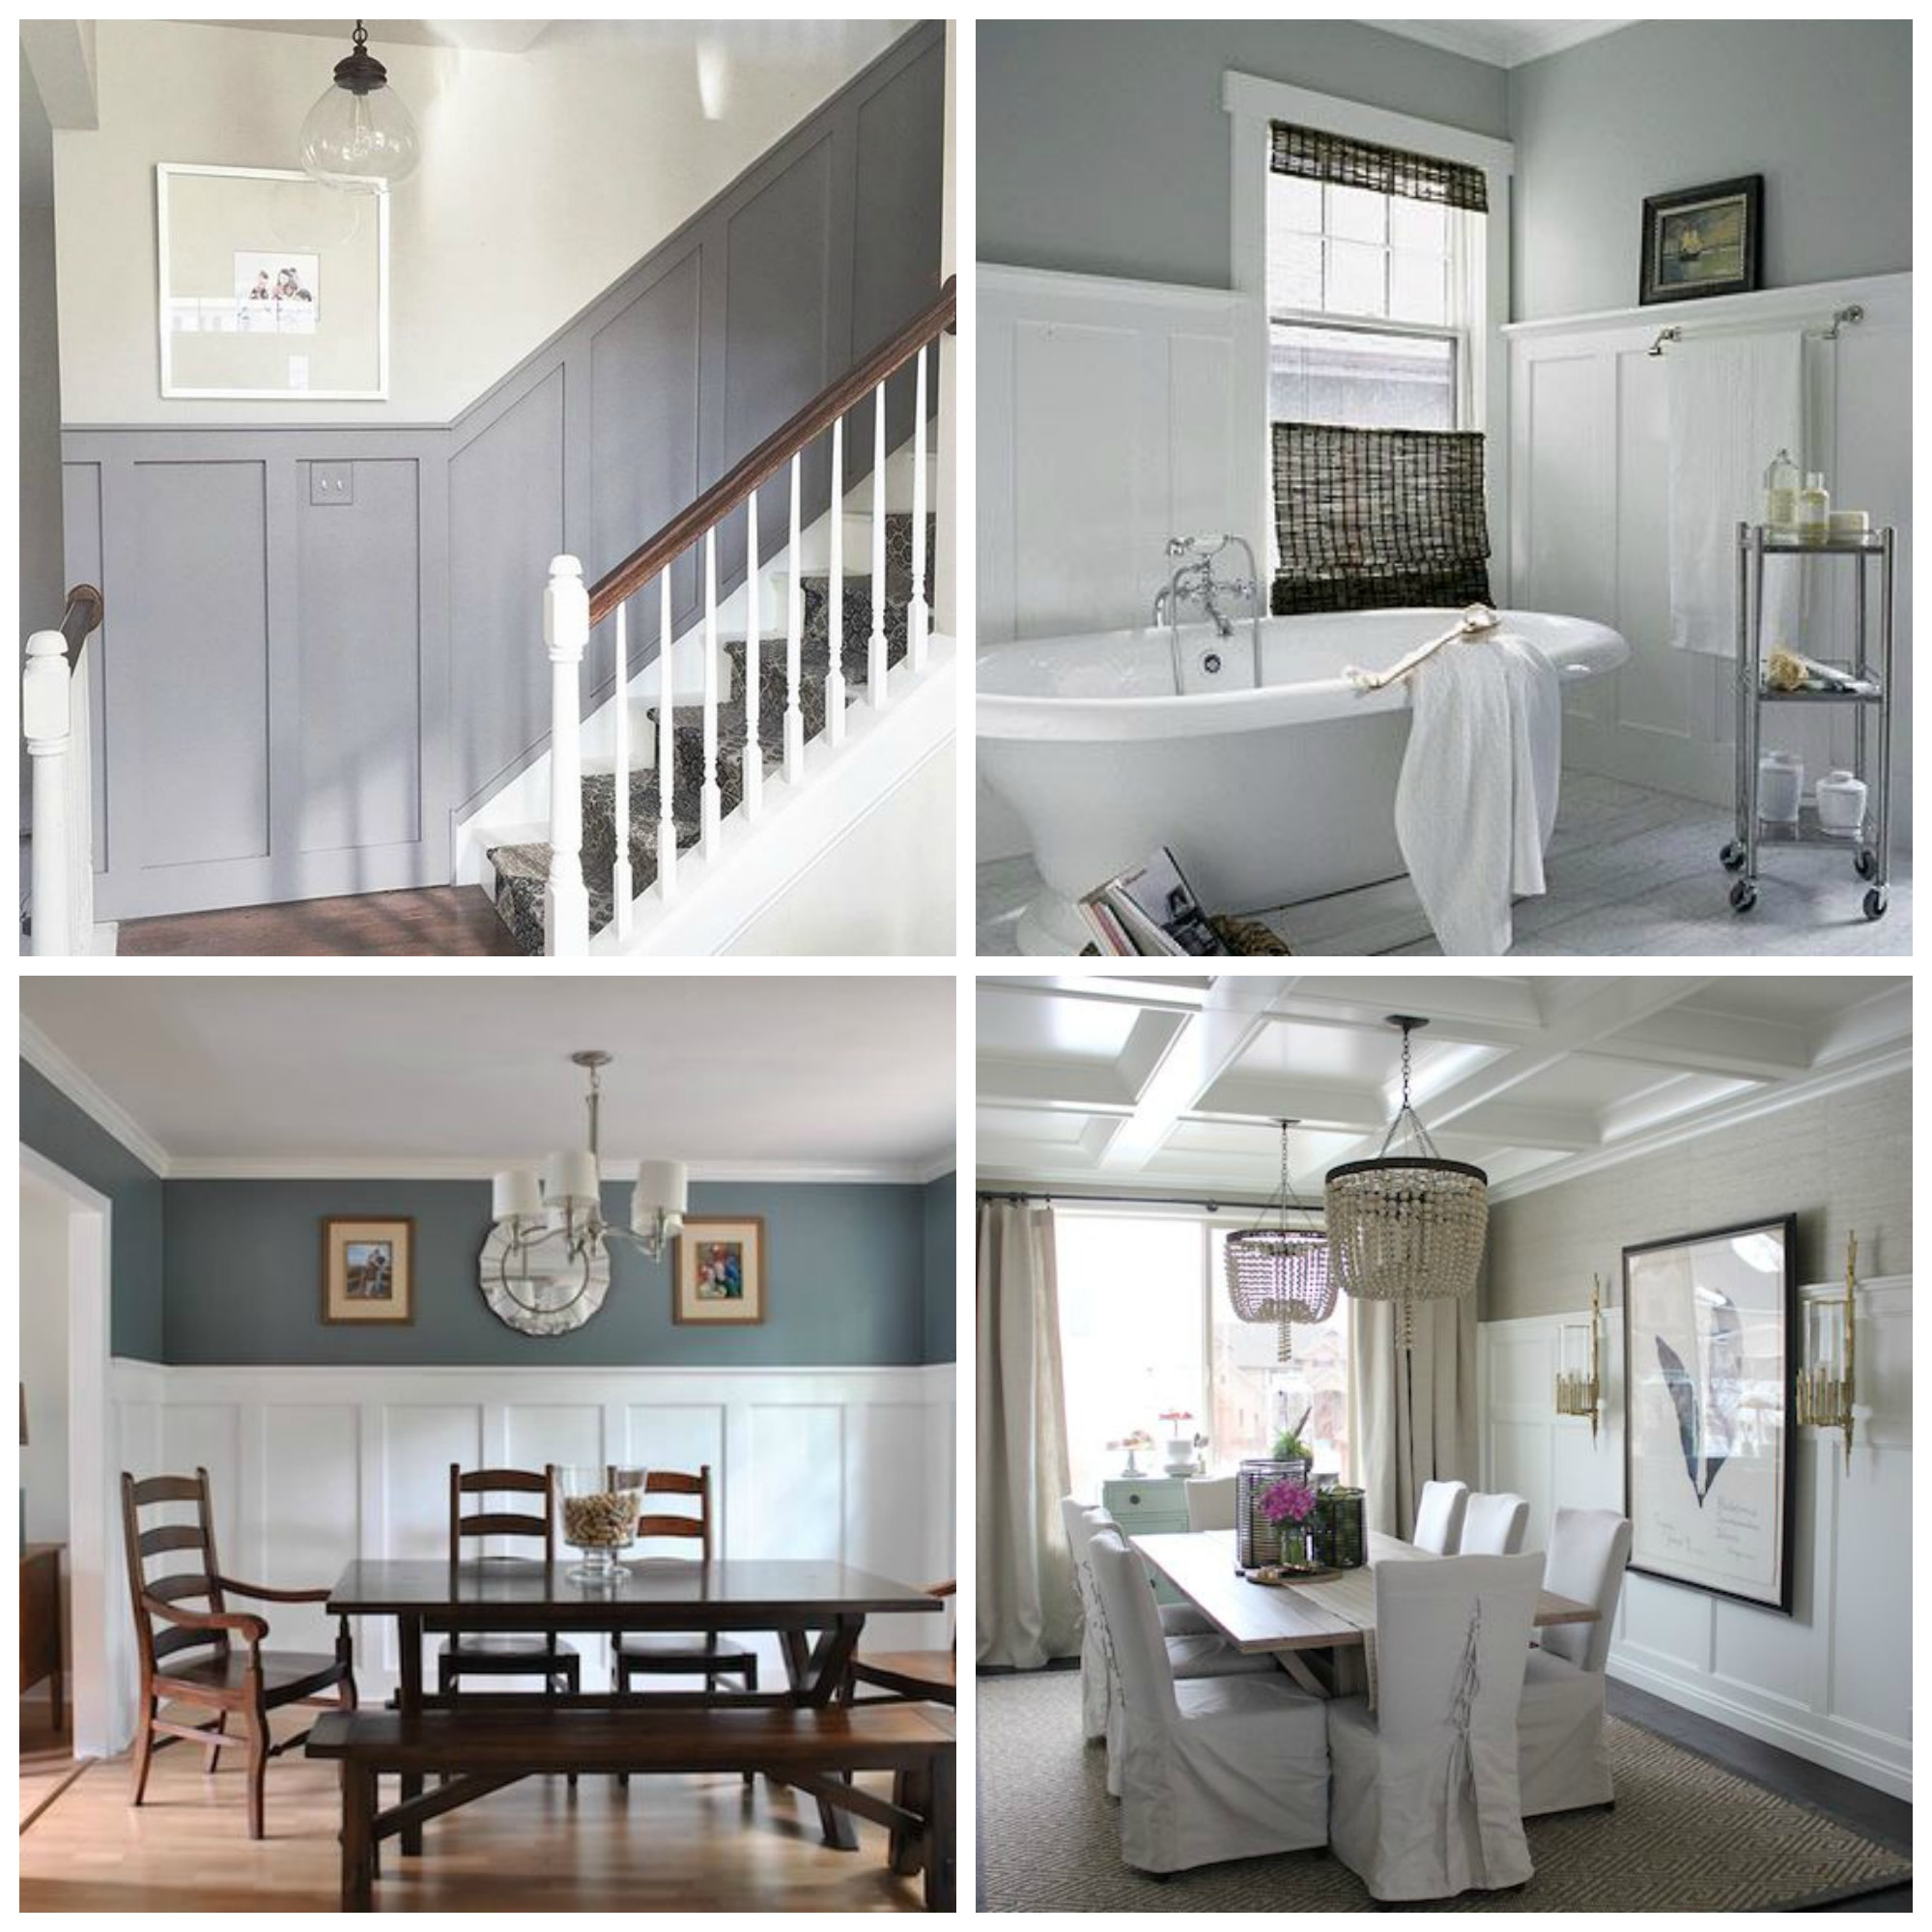 Wainscoting Walls- Where to hang art the DO's and Dont's